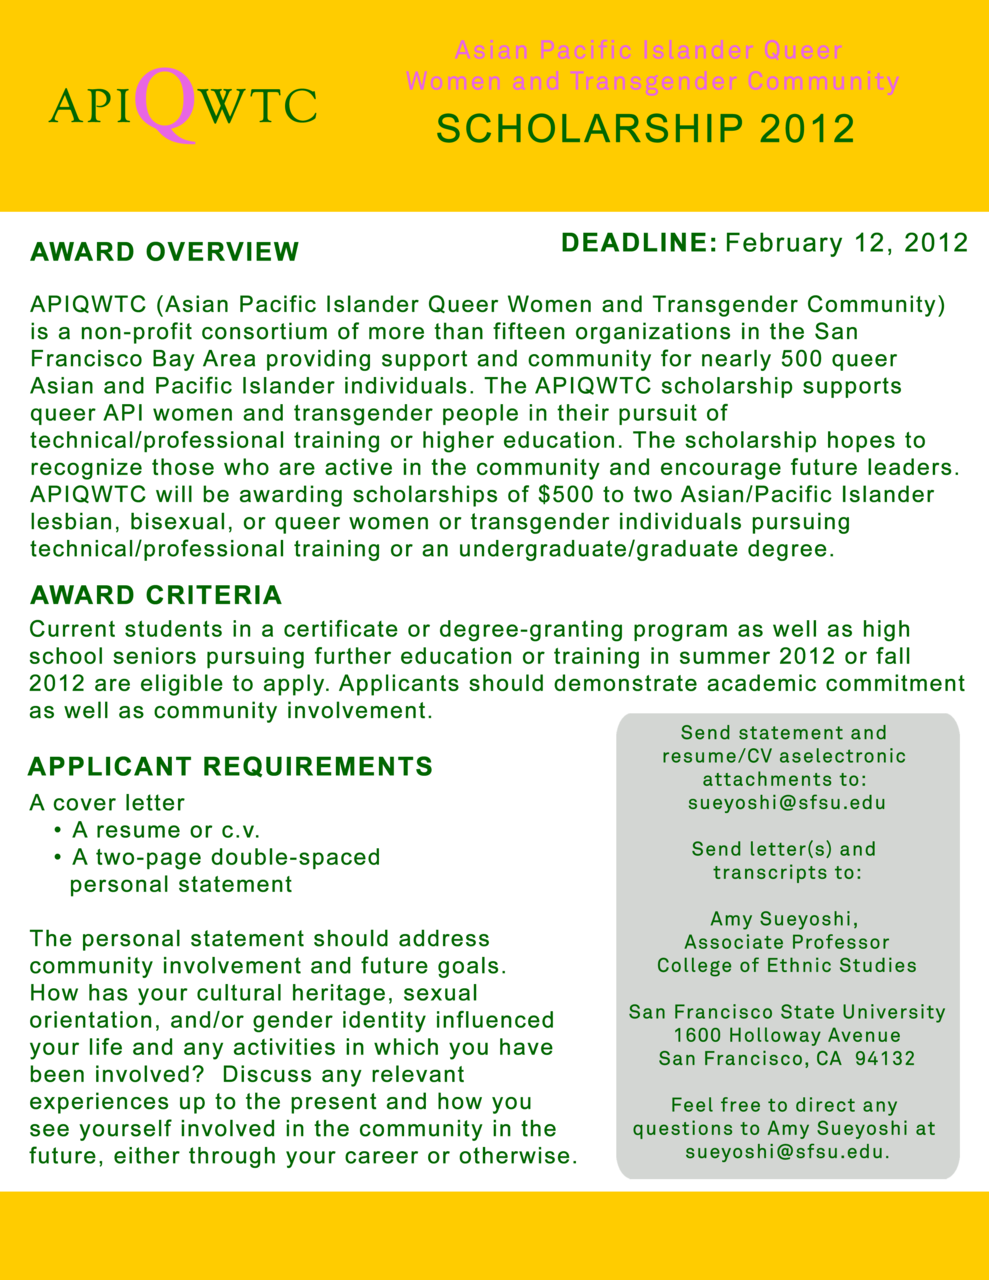 genderinfinite:  APIQWTC 2012 Scholarship - Feb 12, 2012 AWARD OVERVIEW   APIQWTC (Asian Pacific Islander Queer Women and Transgender Community) is a non-profit consortium of more than fifteen organizations in the  San Francisco Bay Area providing support and community for nearly 500 queer Asian and Pacific Islander individuals. The APIQWTC scholarship  supports queer API women and transgender people in their pursuit of technical/professional training or higher education. The scholarship hopes to recognize those who are active in the community and encourage  future leaders. APIQWTC will be awarding scholarships of $500 to two  Asian/Pacific Islander lesbian, bisexual, or queer women or  transgender individuals pursuing technical/professional training or an undergraduate/graduate degree.AWARD CRITERIAHigh school seniors pursuing further education or training in summer  2011 or fall 2011 are also eligible to apply. Applicants should  demonstrate academic commitment as well as community involvement.APPLICANT REQUIREMENTS Please submit: A cover letter A resume or c.v. A two-page double-spaced personal statement. The personal statement should address community involvement and future goals. How has your cultural heritage, sexual orientation, and/or  gender identity influenced your life and any activities in which you  have been involved? Discuss any relevant experiences up to the present  and how you see yourself involved in the community in the future,  either through your career or otherwise. An official transcript At least one but no more than two letters of recommendation. Letter(s) of reference should come from an instructor, employer,  academic counselor, coach, community leader, or any other individual  not related to you who is familiar with your personal, academic, or  leadership qualities.Please submit statements and resumes/c.v.'s electronically no later than 7pm February 12, 2011. Letters and transcripts must be postmarked by February 12, 2011.Send statement and resume/CV as electronic attachments to: sueyoshi@sfsu.eduSend letter(s) and transcripts to:Amy Sueyoshi, Associate ProfessorCollege of Ethnic Studies/San Francisco State University1600 Holloway Avenue, San Francisco, CA 94132Feel free to direct any questions to Amy Sueyoshi at sueyoshi@sfsu.eduThe selection committee reserves the right to not award the scholarships if an appropriate applicant can not be identified.